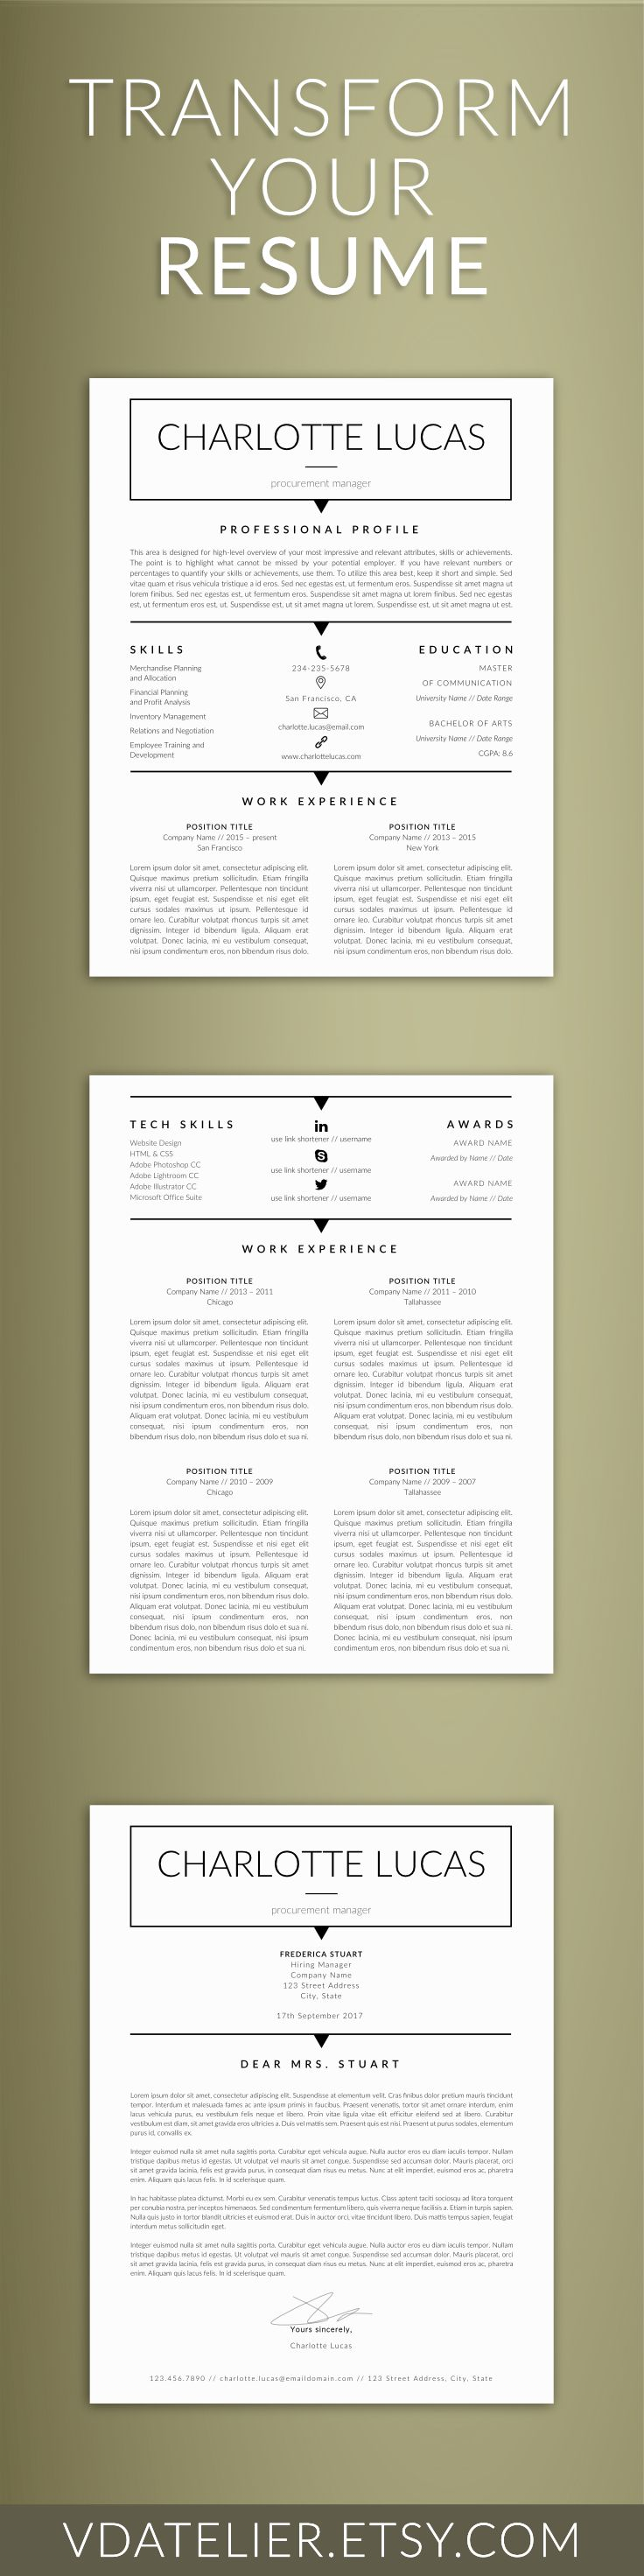 Best Modern Resume Templates Images On   Modern Resume